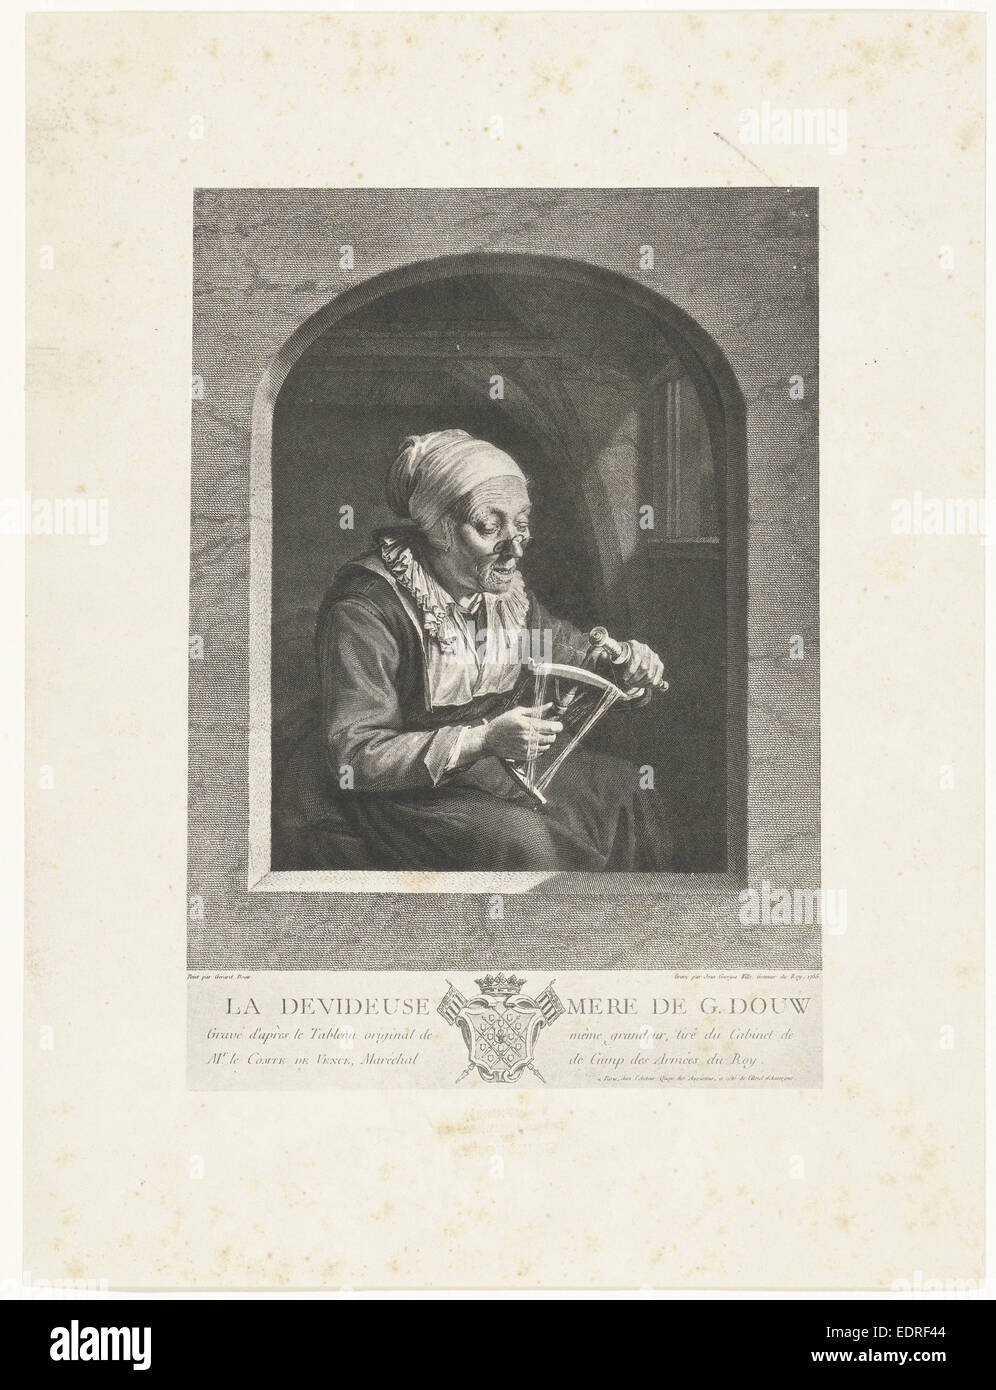 Photographic reproduction of the print La Dévideuse after Gerard Dou by Wille, Maurits Verveer, Johann Georg - Stock Image